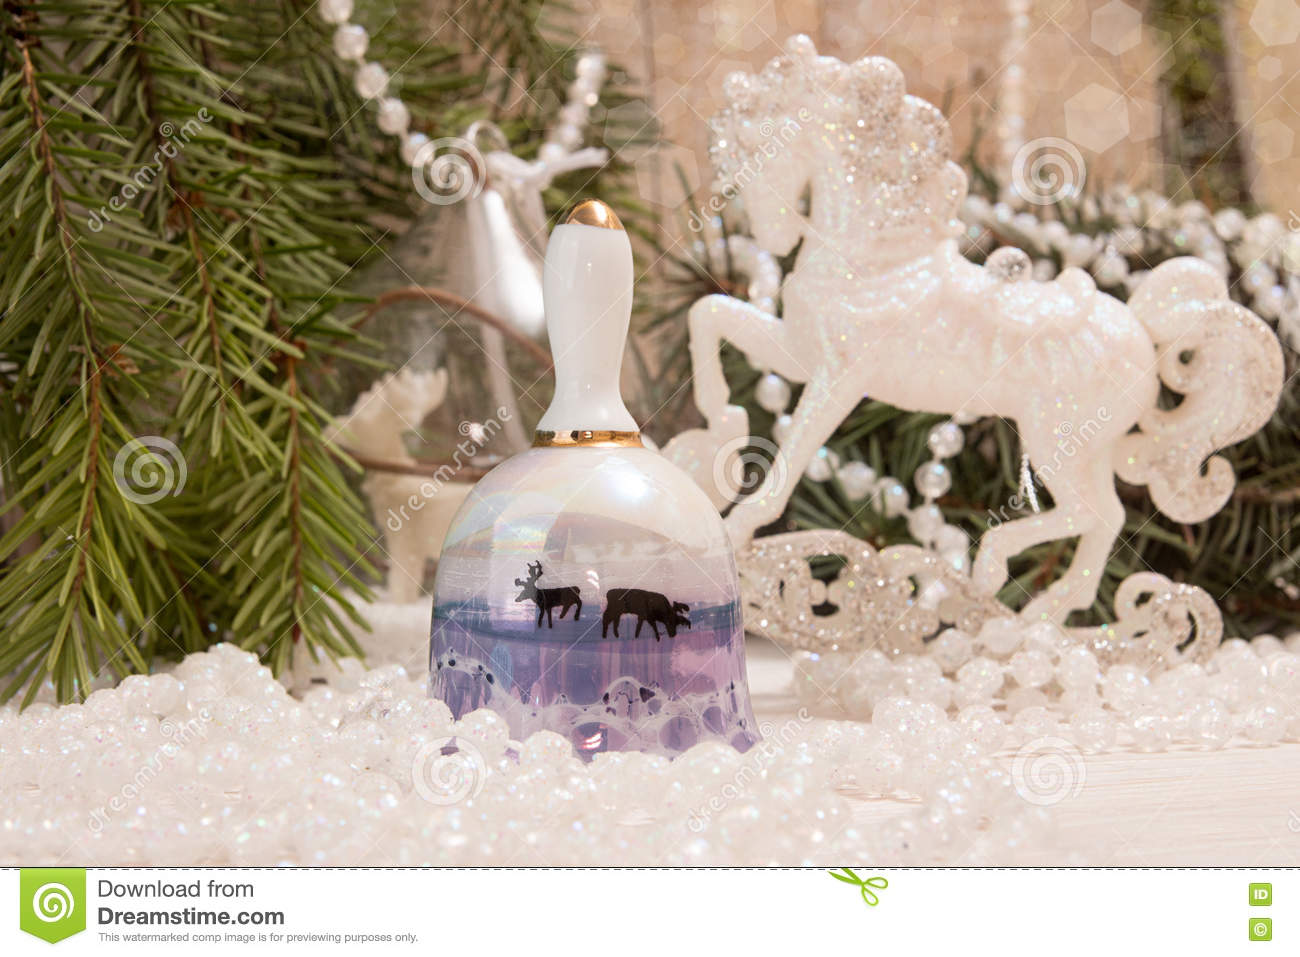 Christmas New Year Holiday Concept Bell White Horse Garland Stock Image Image Of Baubles Celebration 80945379